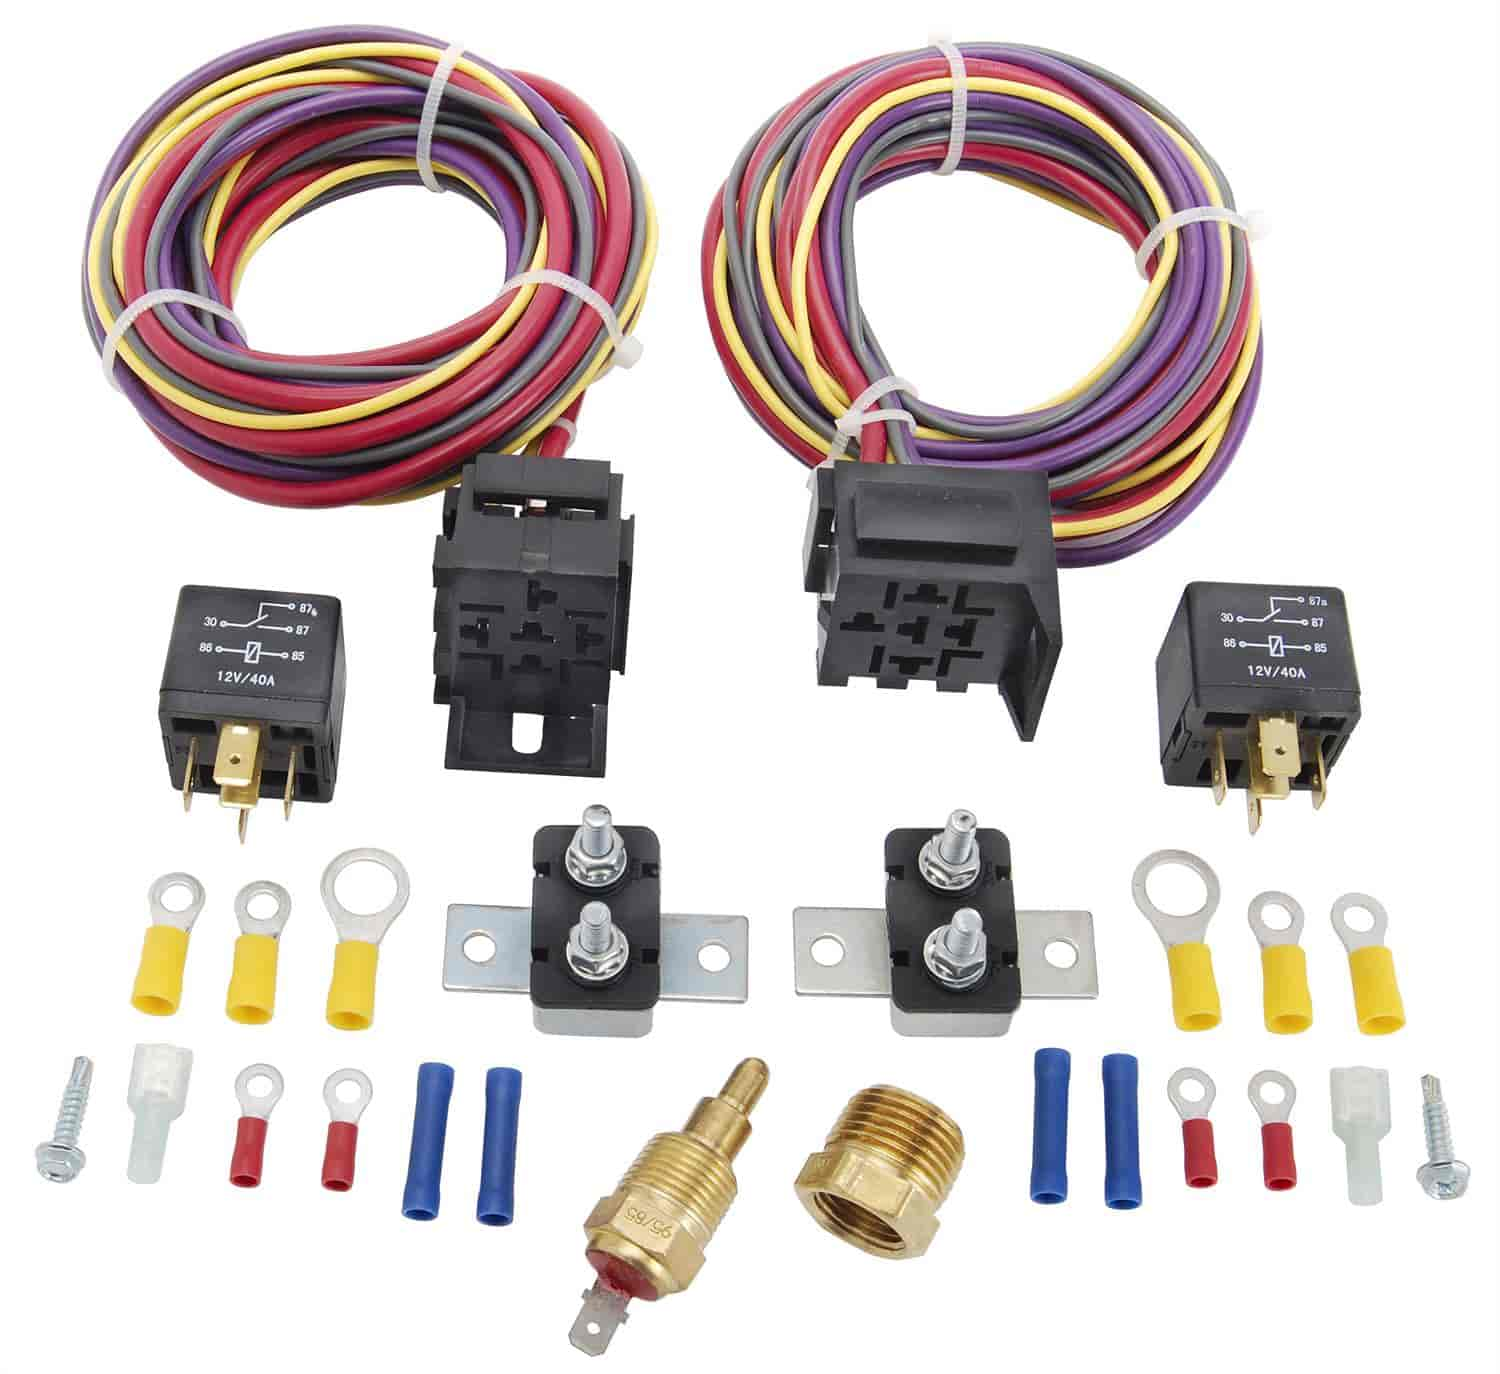 555 10571 jegs performance products 10571 dual fan wiring harness & relay VW Wiring Harness Kits at creativeand.co